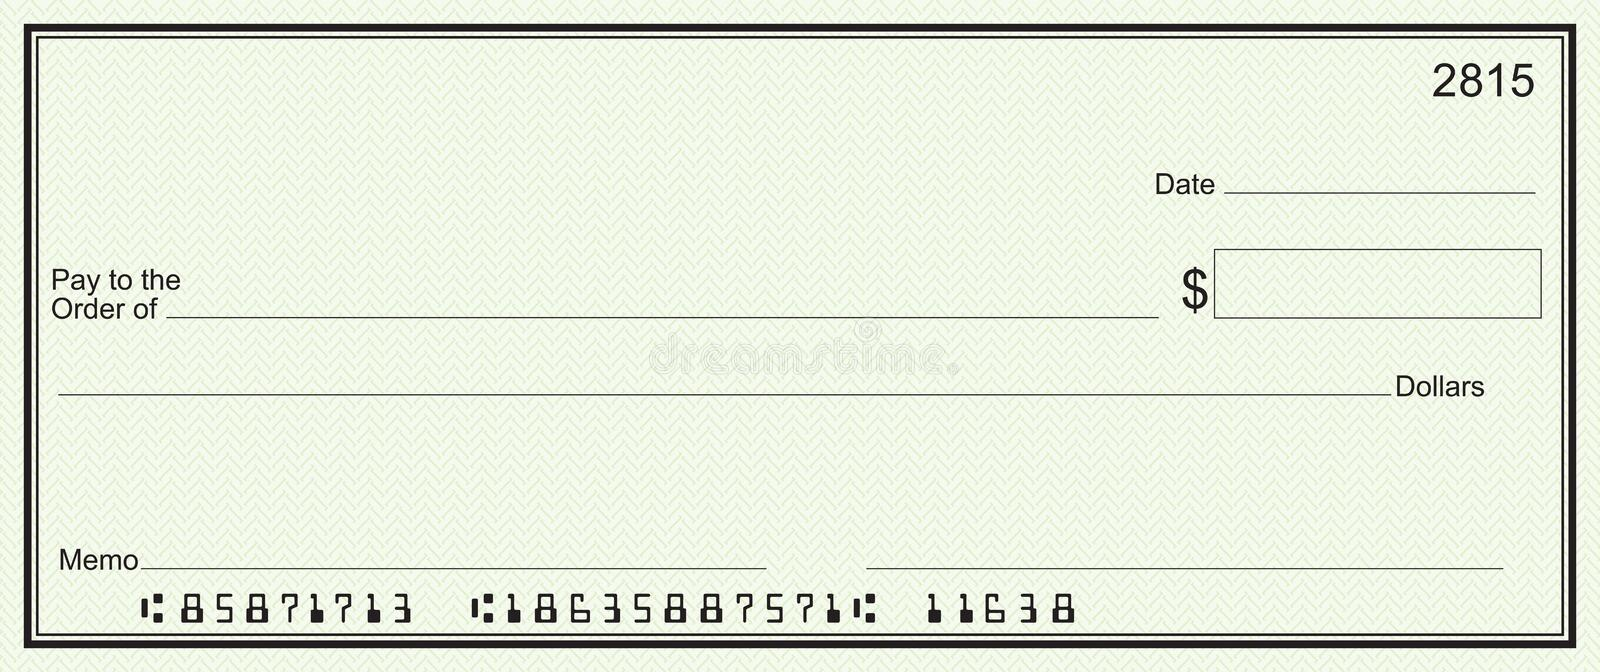 Giant check template giant presentation check template for Oversized check template